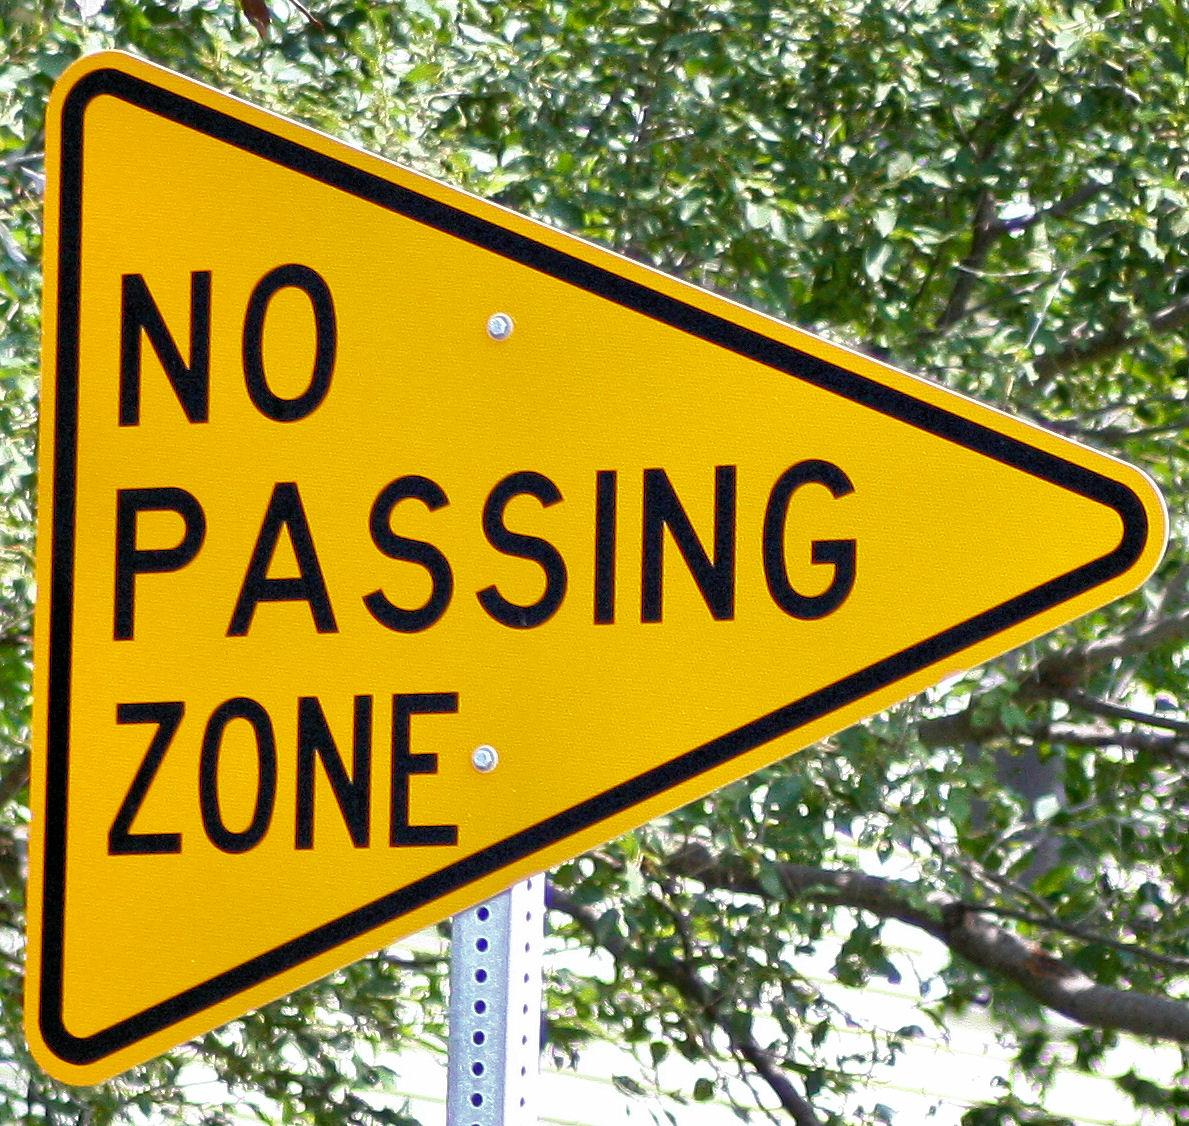 passing in a no passing zone